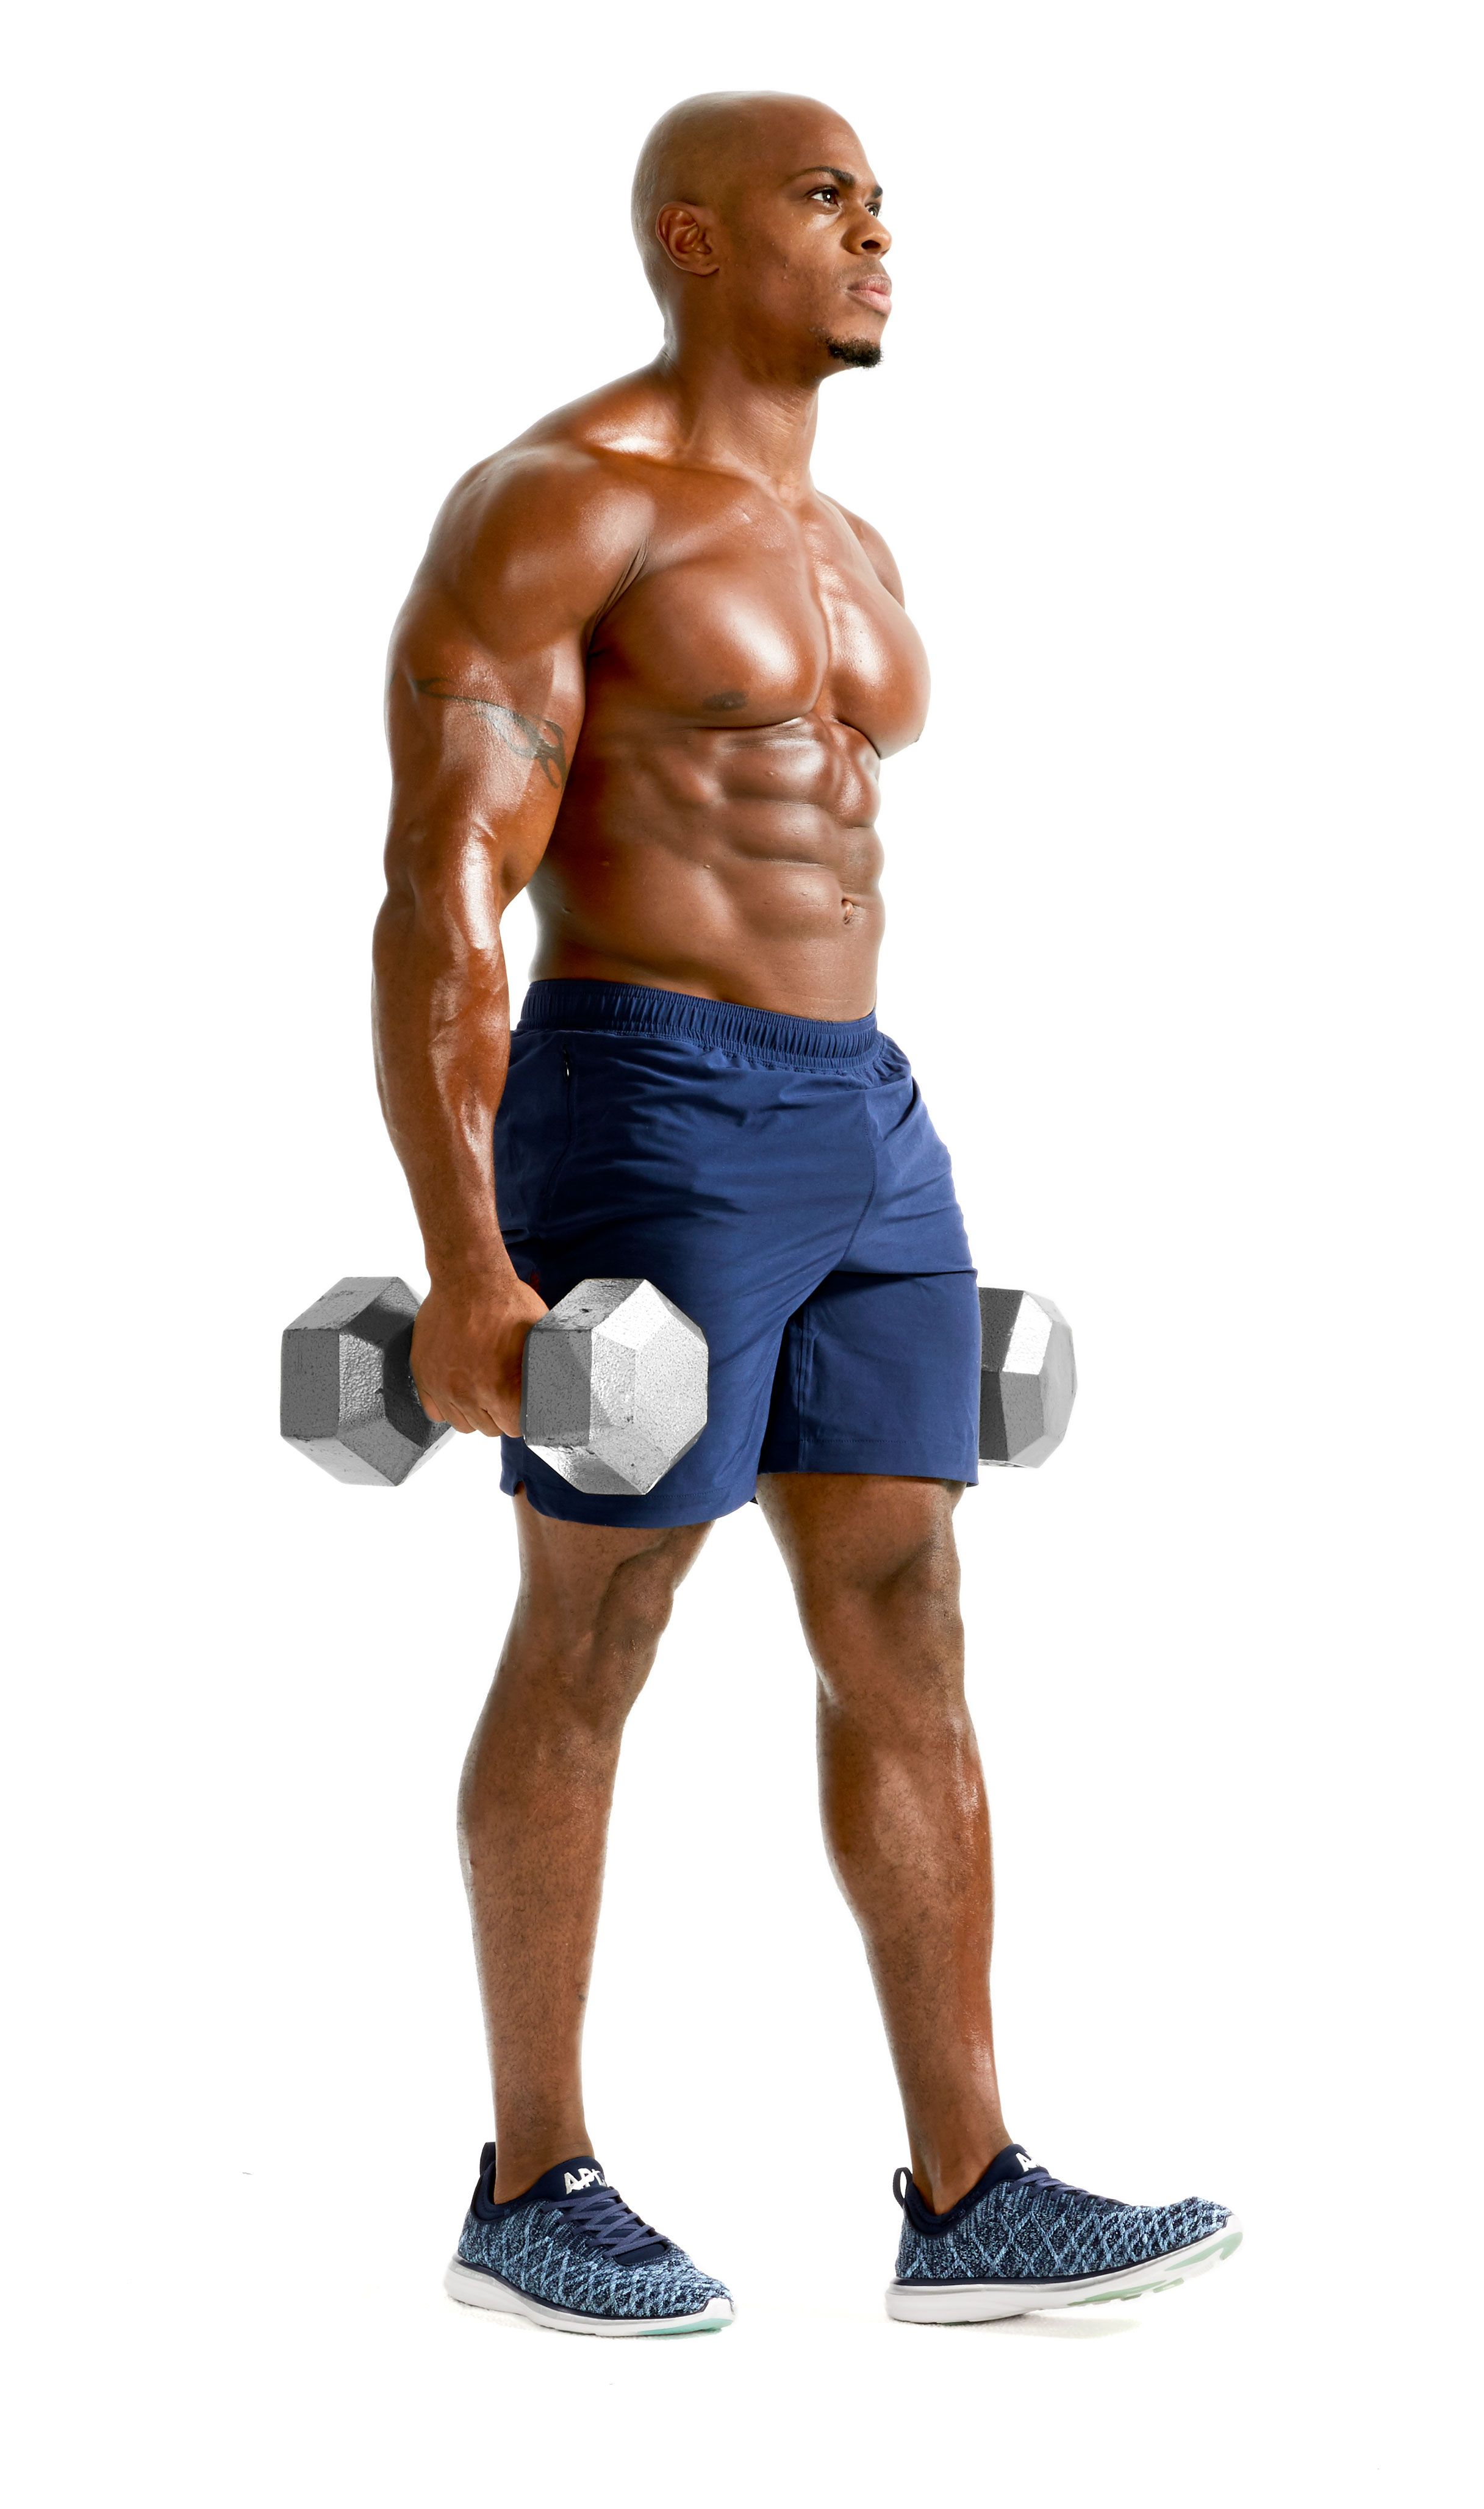 how to get bigger chest and shoulders in a week